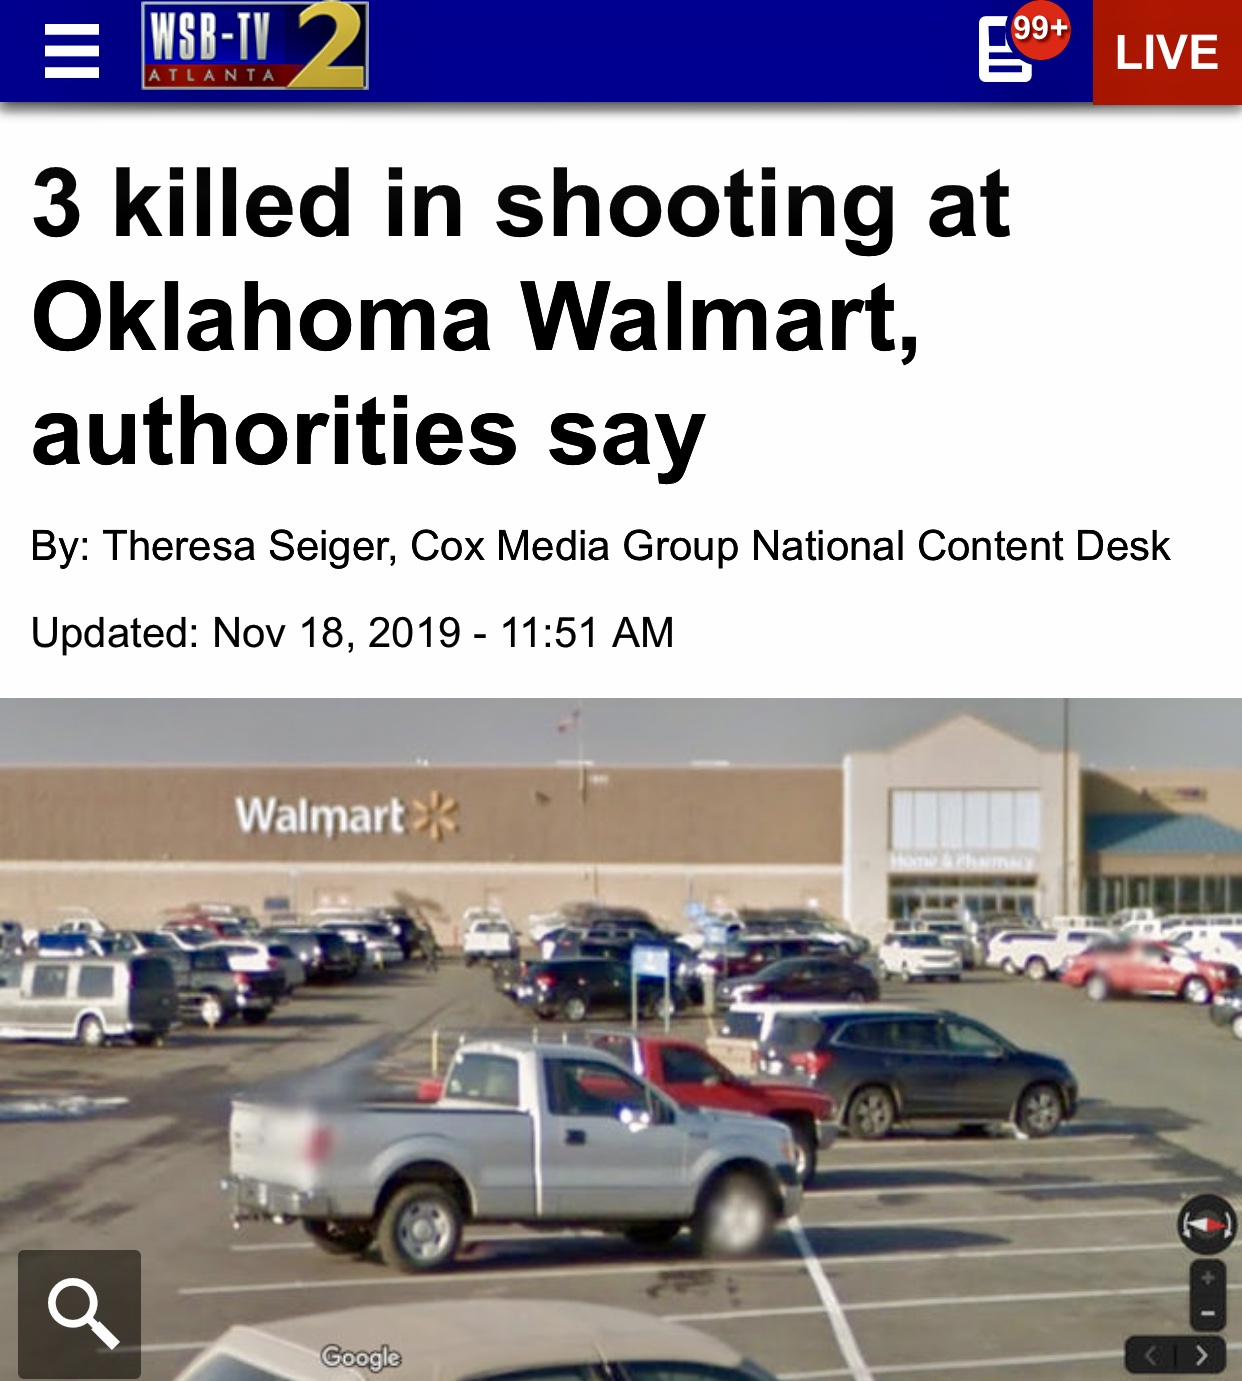 Breaking News at Least 3 People Killed At A Walmart In Oklahoma